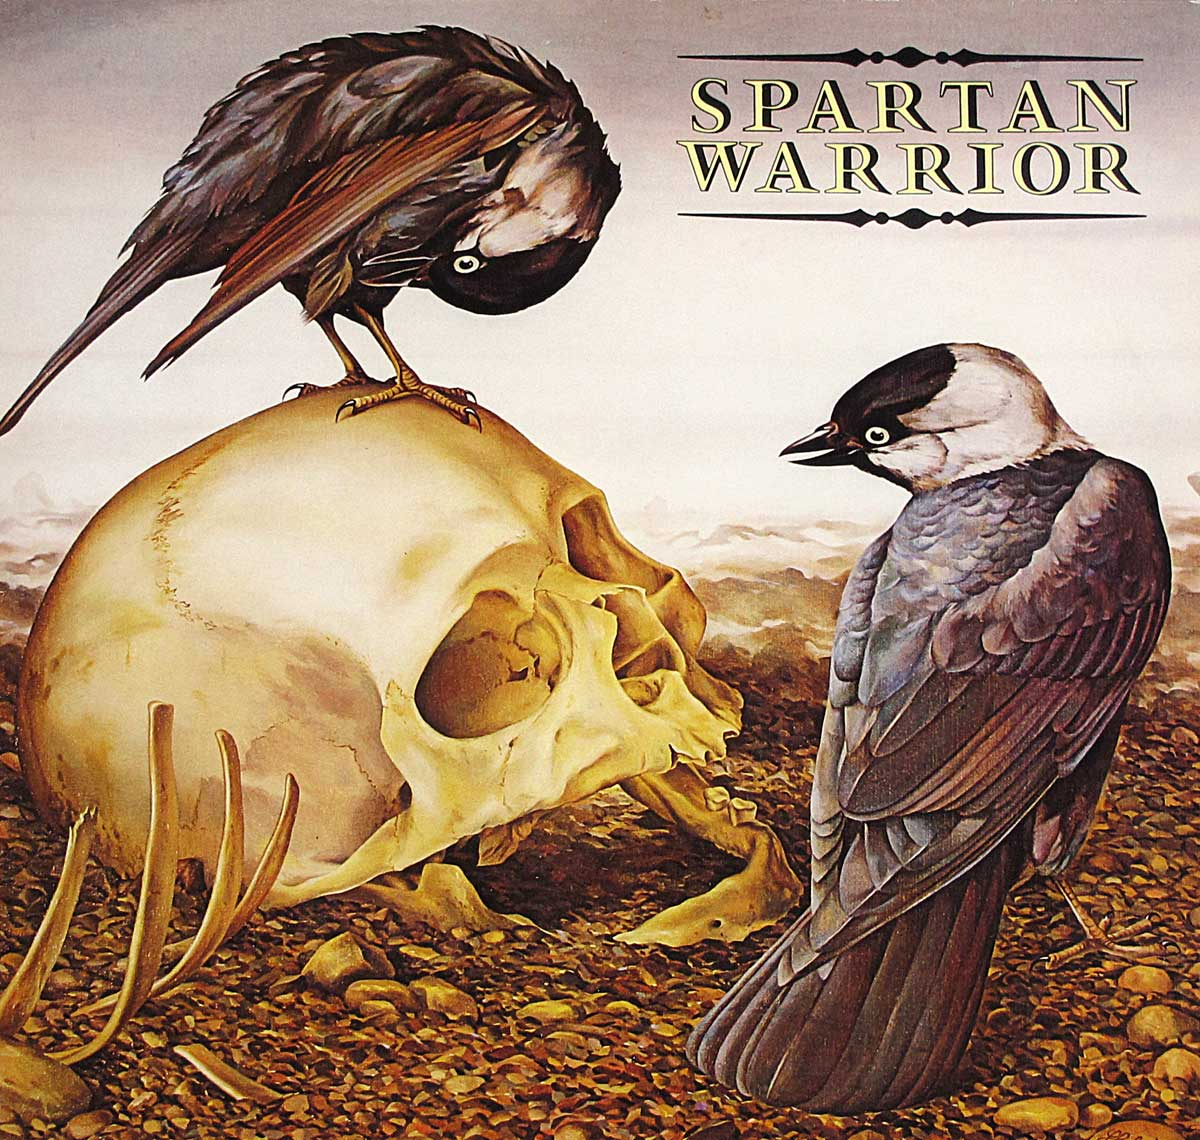 large photo of the album front cover of: SPARTAN WARRIOR - S/T Self-Titled